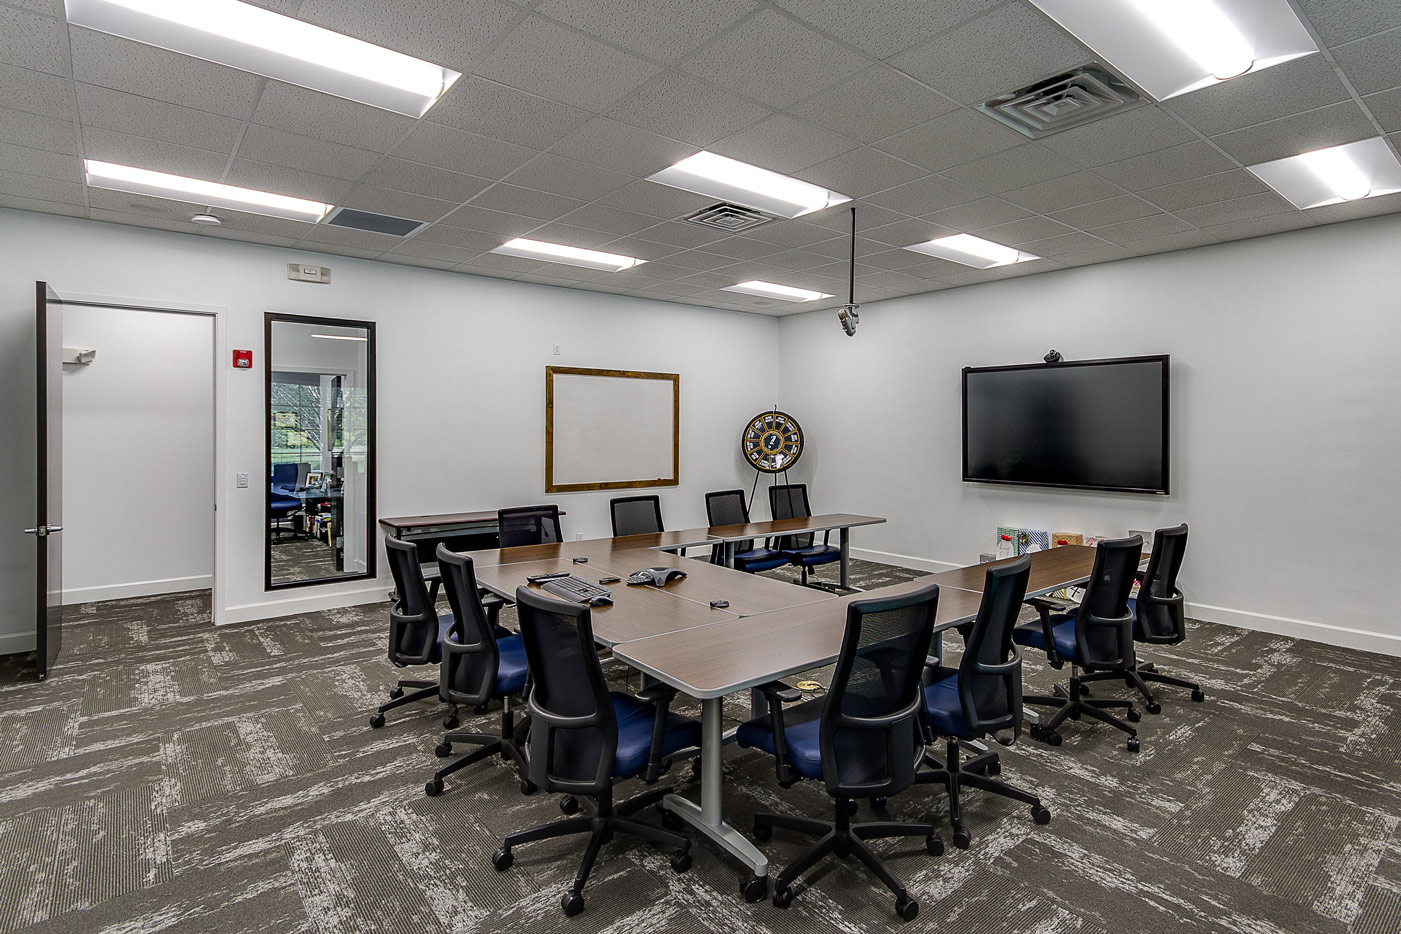 meeting room with u-shaped desk and chairs